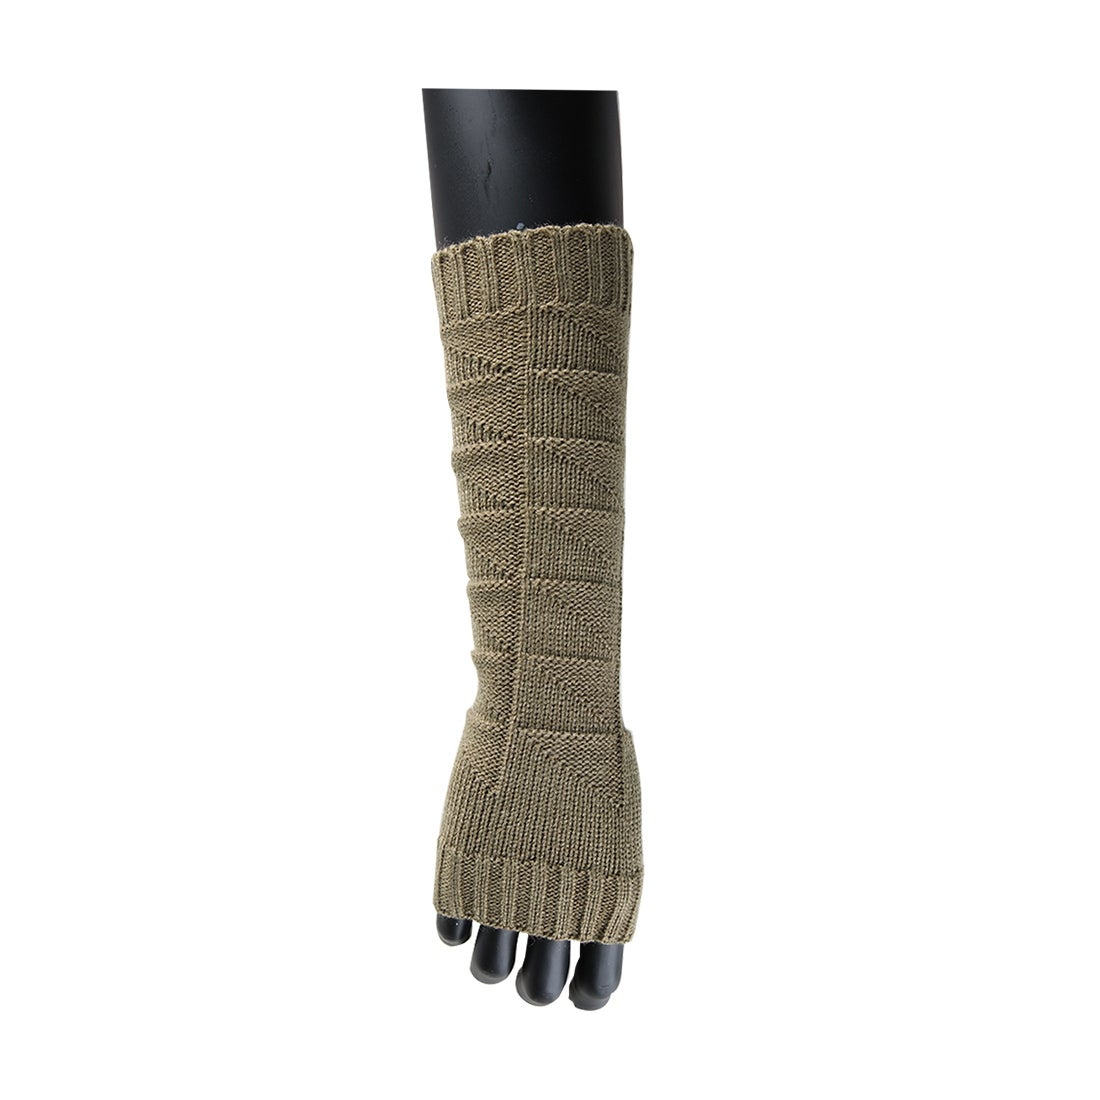 bd33aebd283 Shop Unisex Winter Lace Warmers Ribbing Knitted Thumb Hole Gloves Light  Gray - On Sale - Free Shipping On Orders Over  45 - Overstock - 25714530